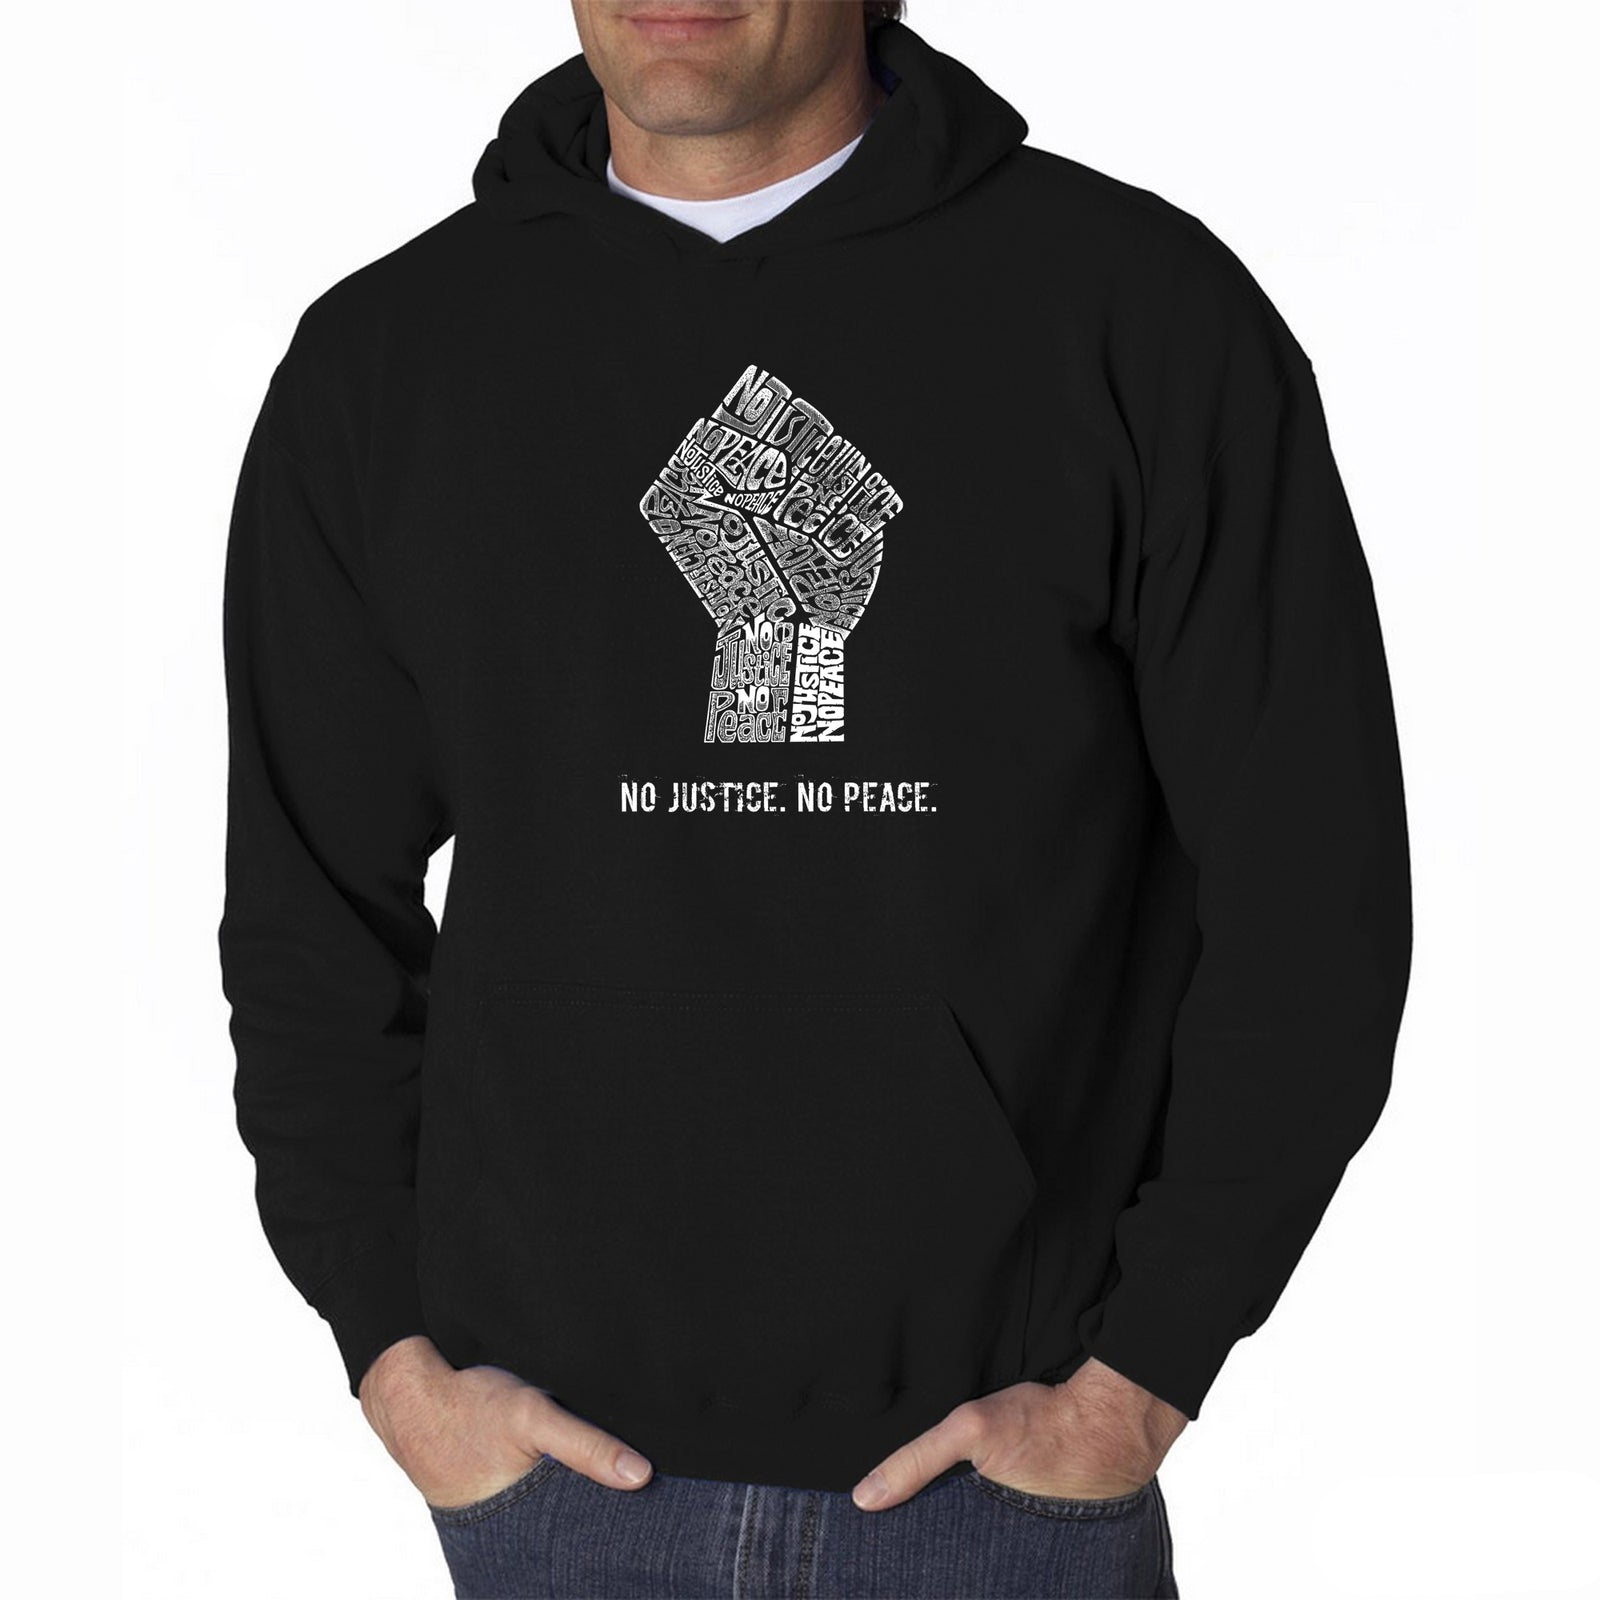 Men's Hooded Sweatshirt - No Justice, No Peace